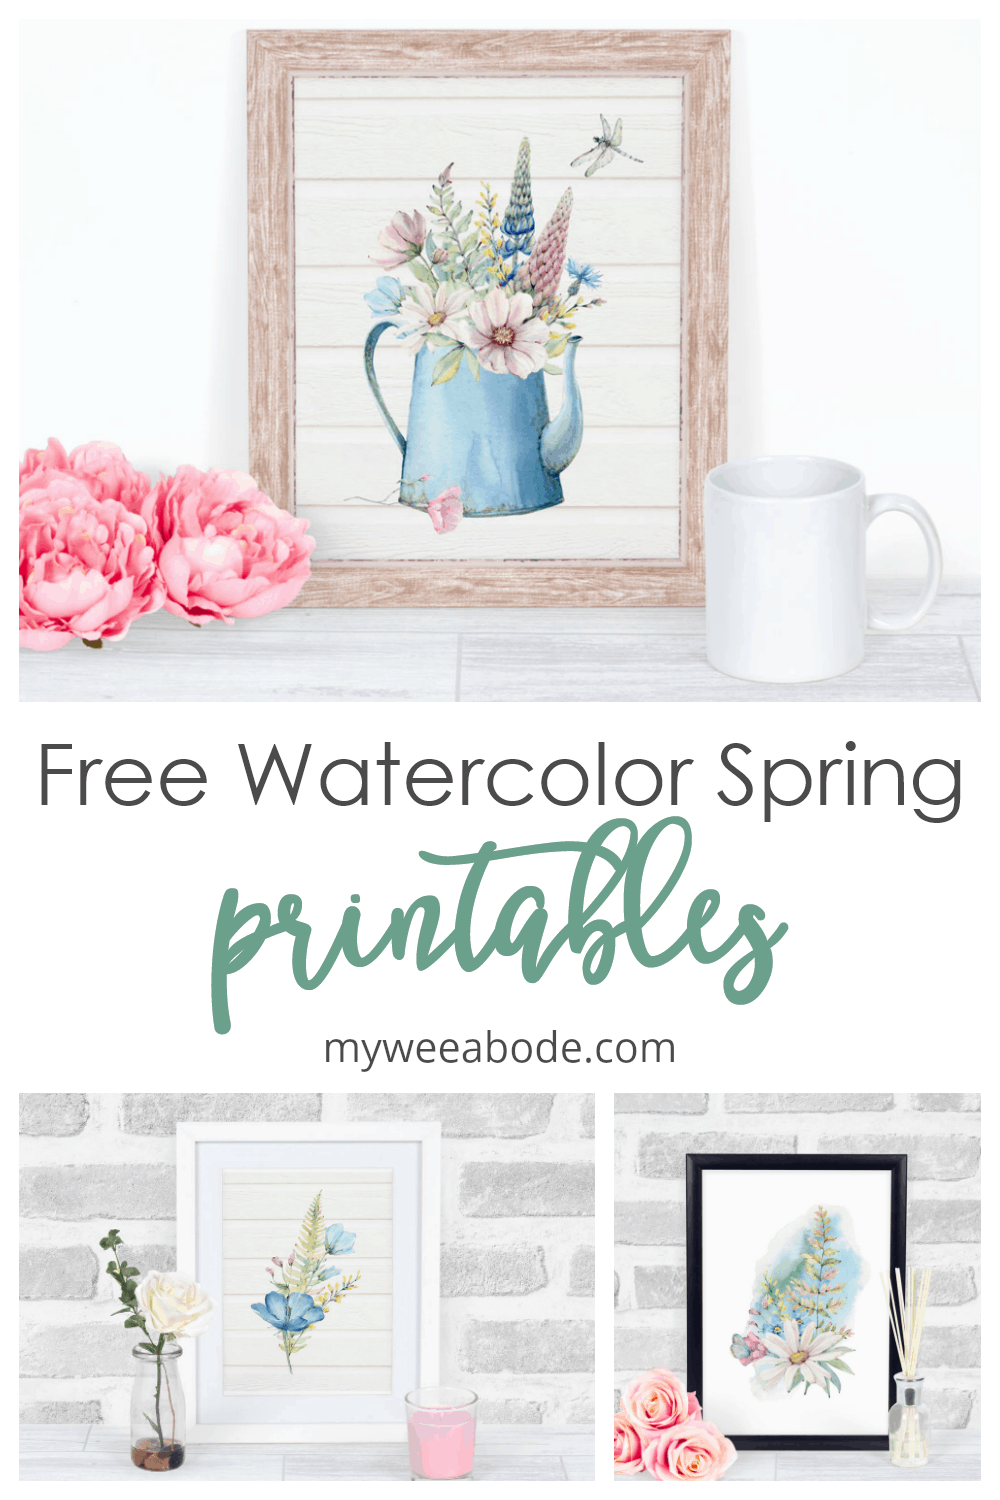 free spring watercolor wall art watering can with spring flowers on surface with pink flowers and coffee mug